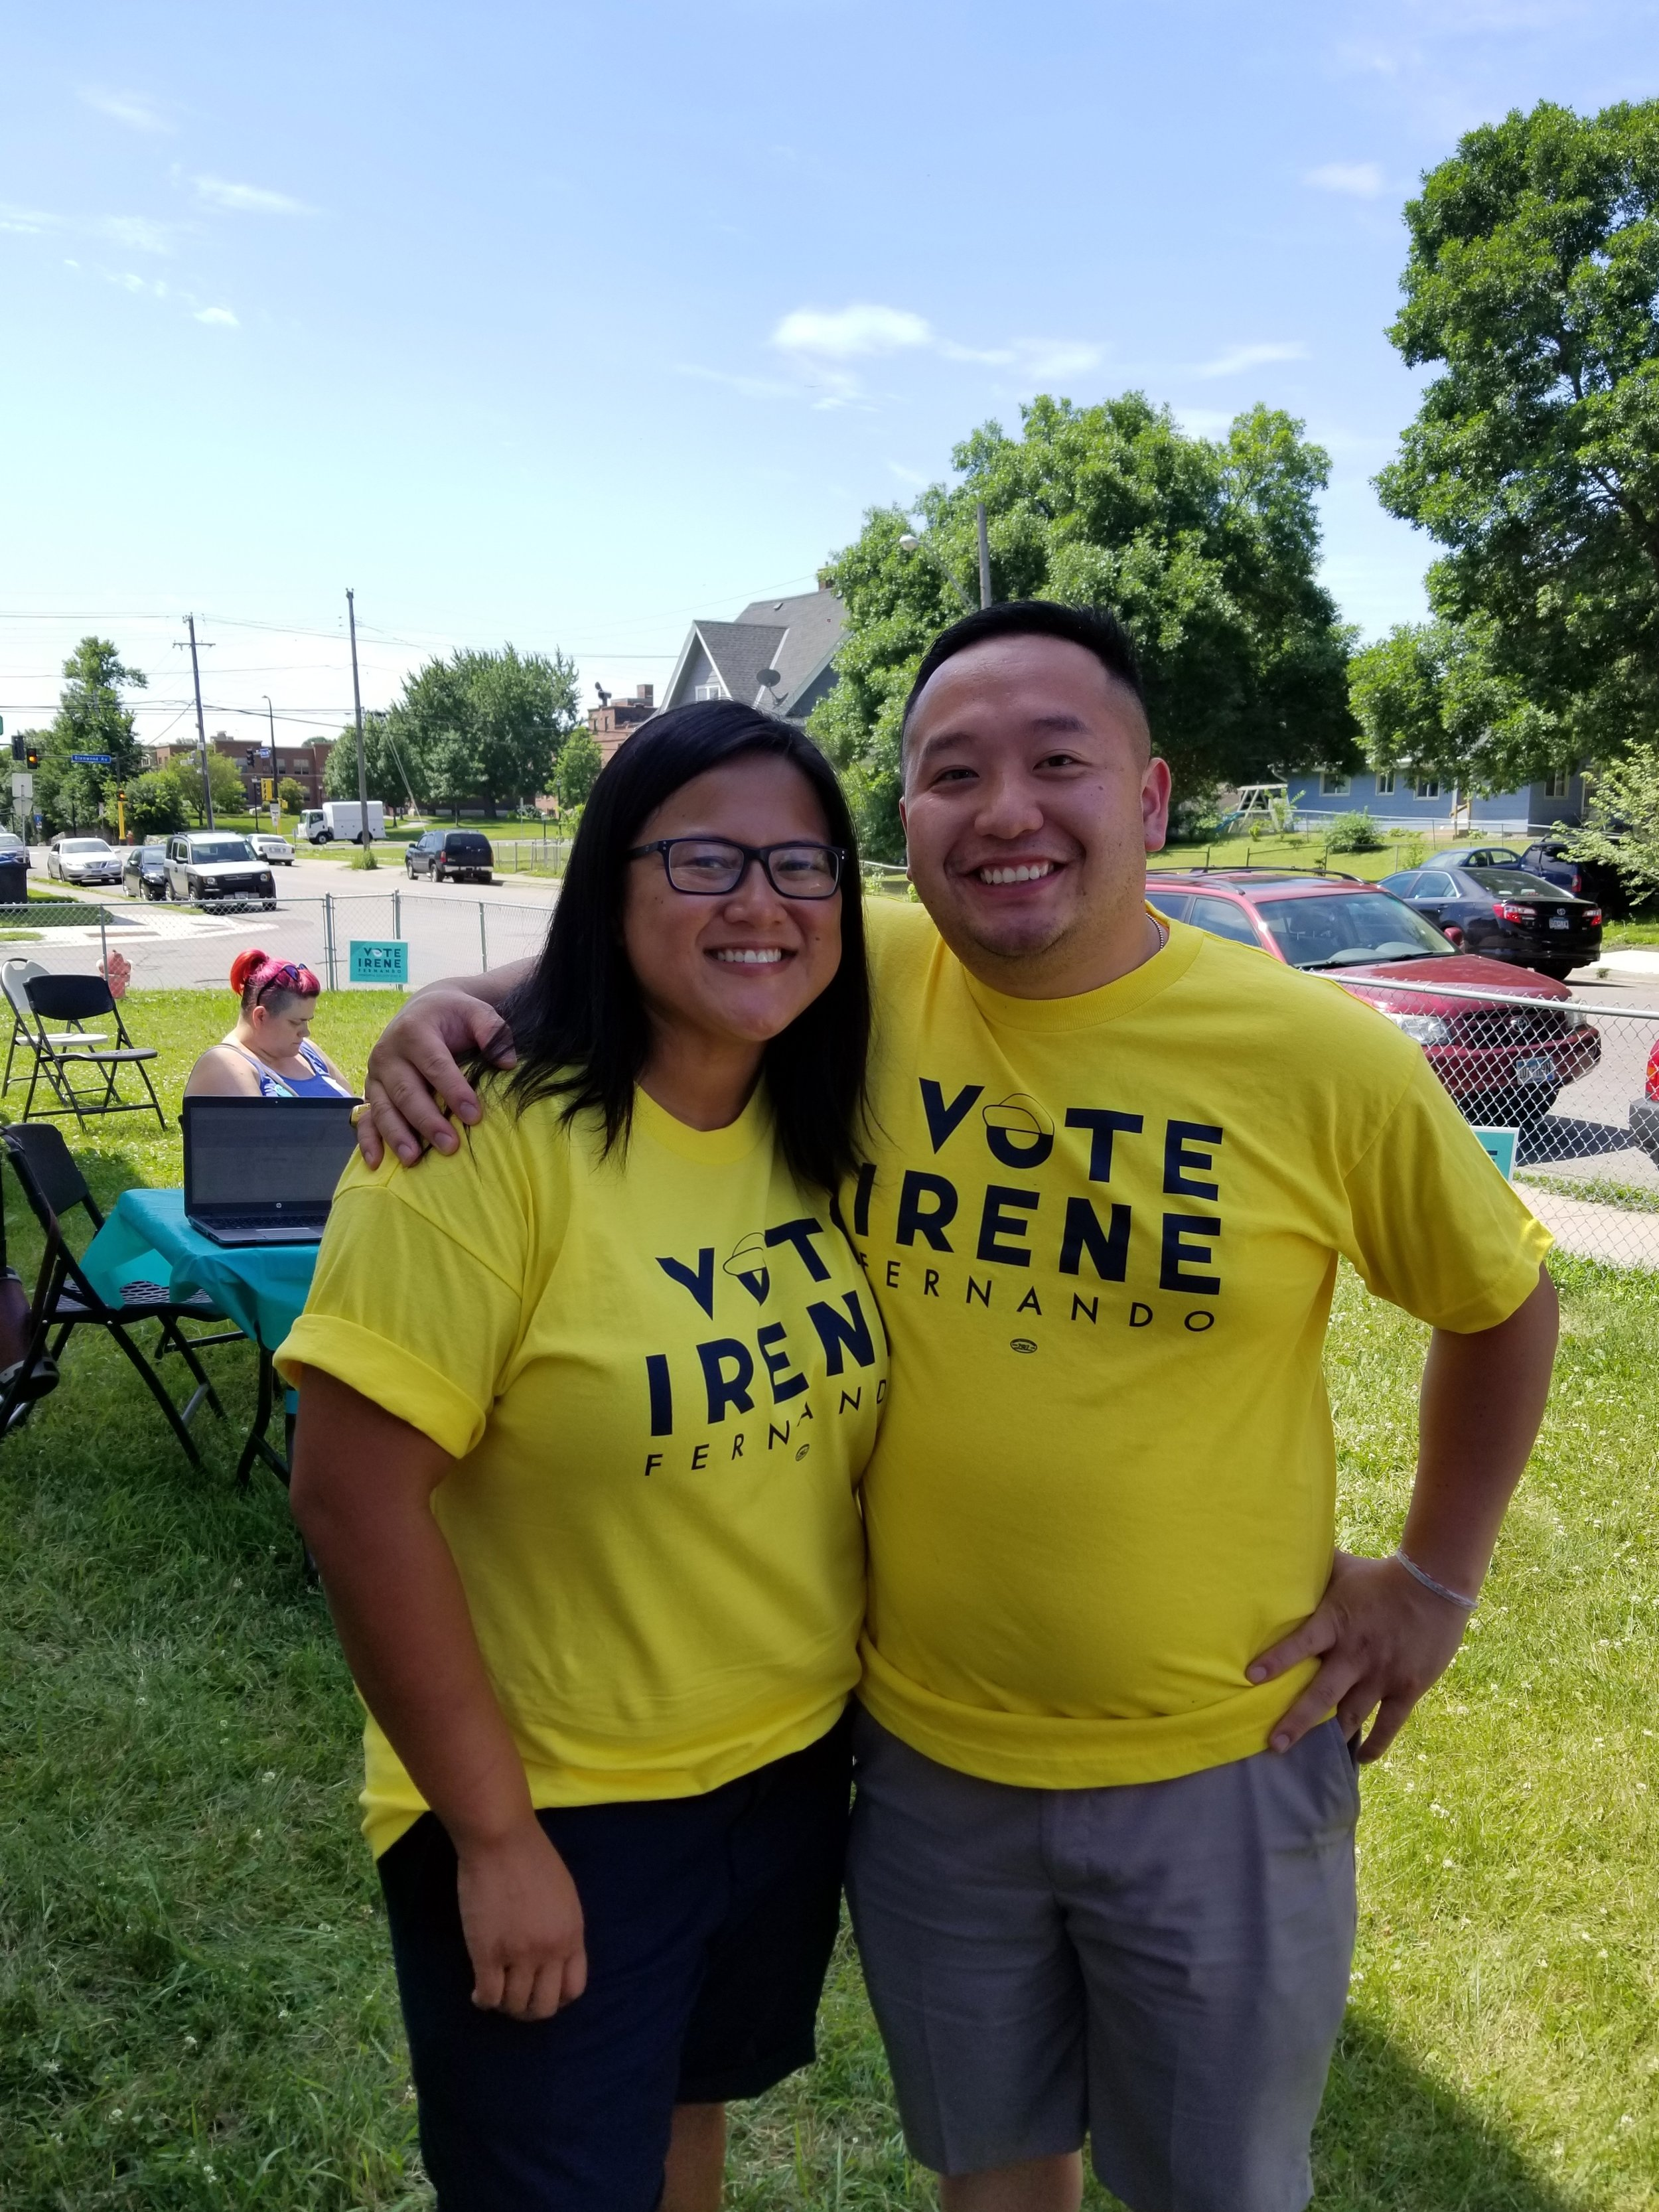 It is with great excitement that I endorse Irene Fernando for Hennepin County Commissioner in District 2. She will advocate for viewpoints that often go unheard on the County level, and I look forward to working with her to strengthen the Northside. Irene's insight and care will undoubtedly build a more inclusive and progressive Hennepin County.